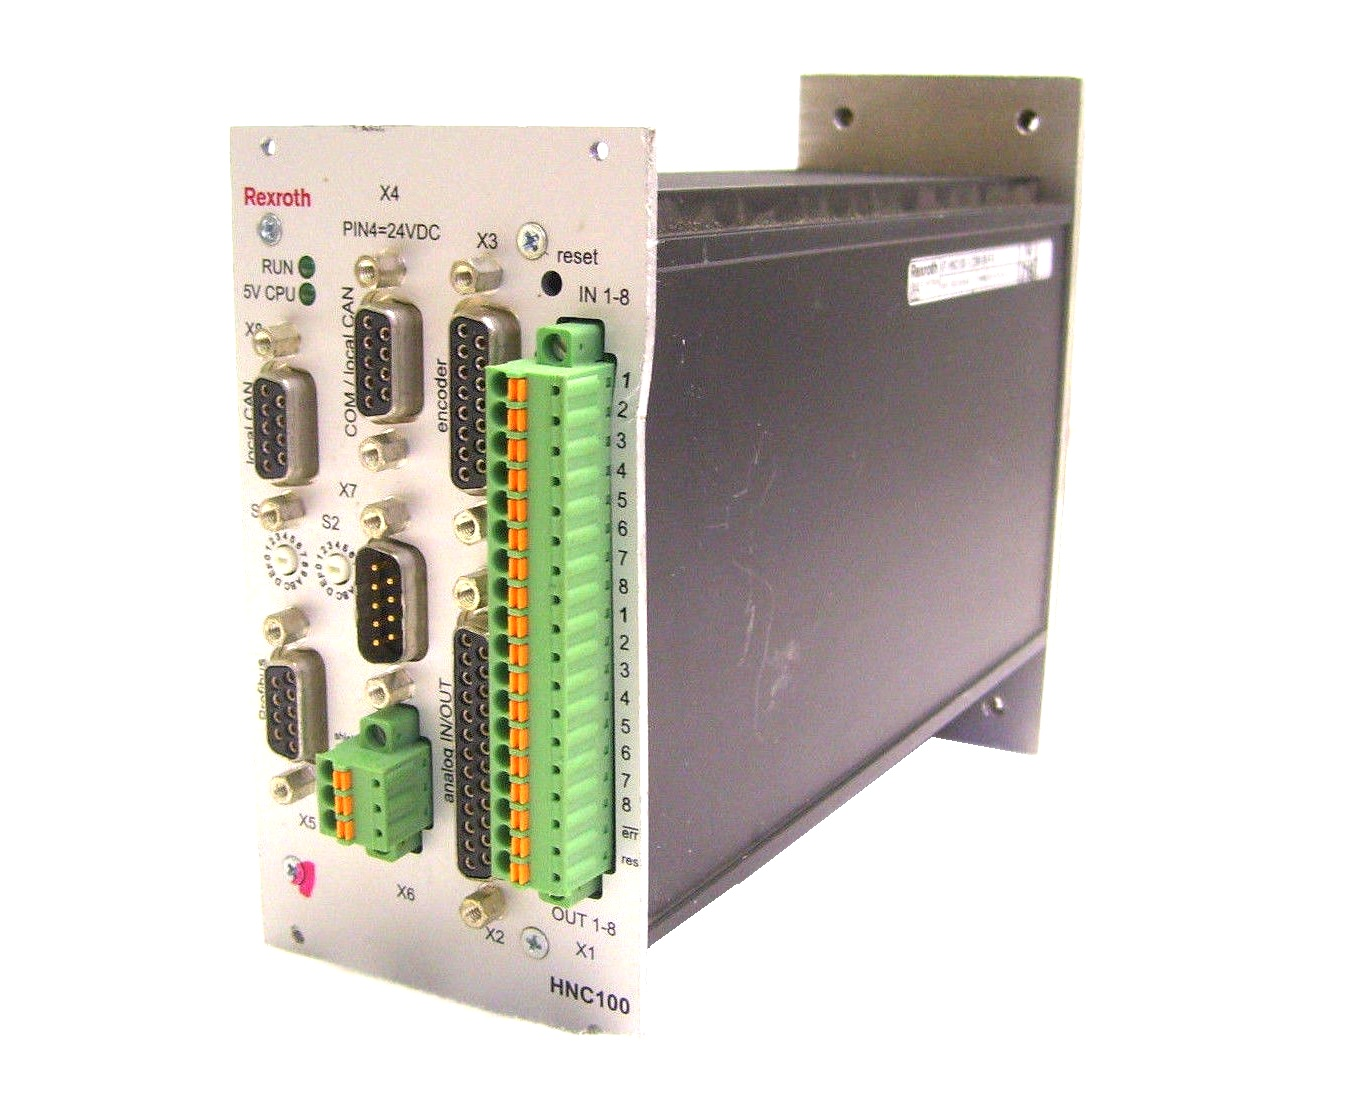 VT-HNC Axis Controllers